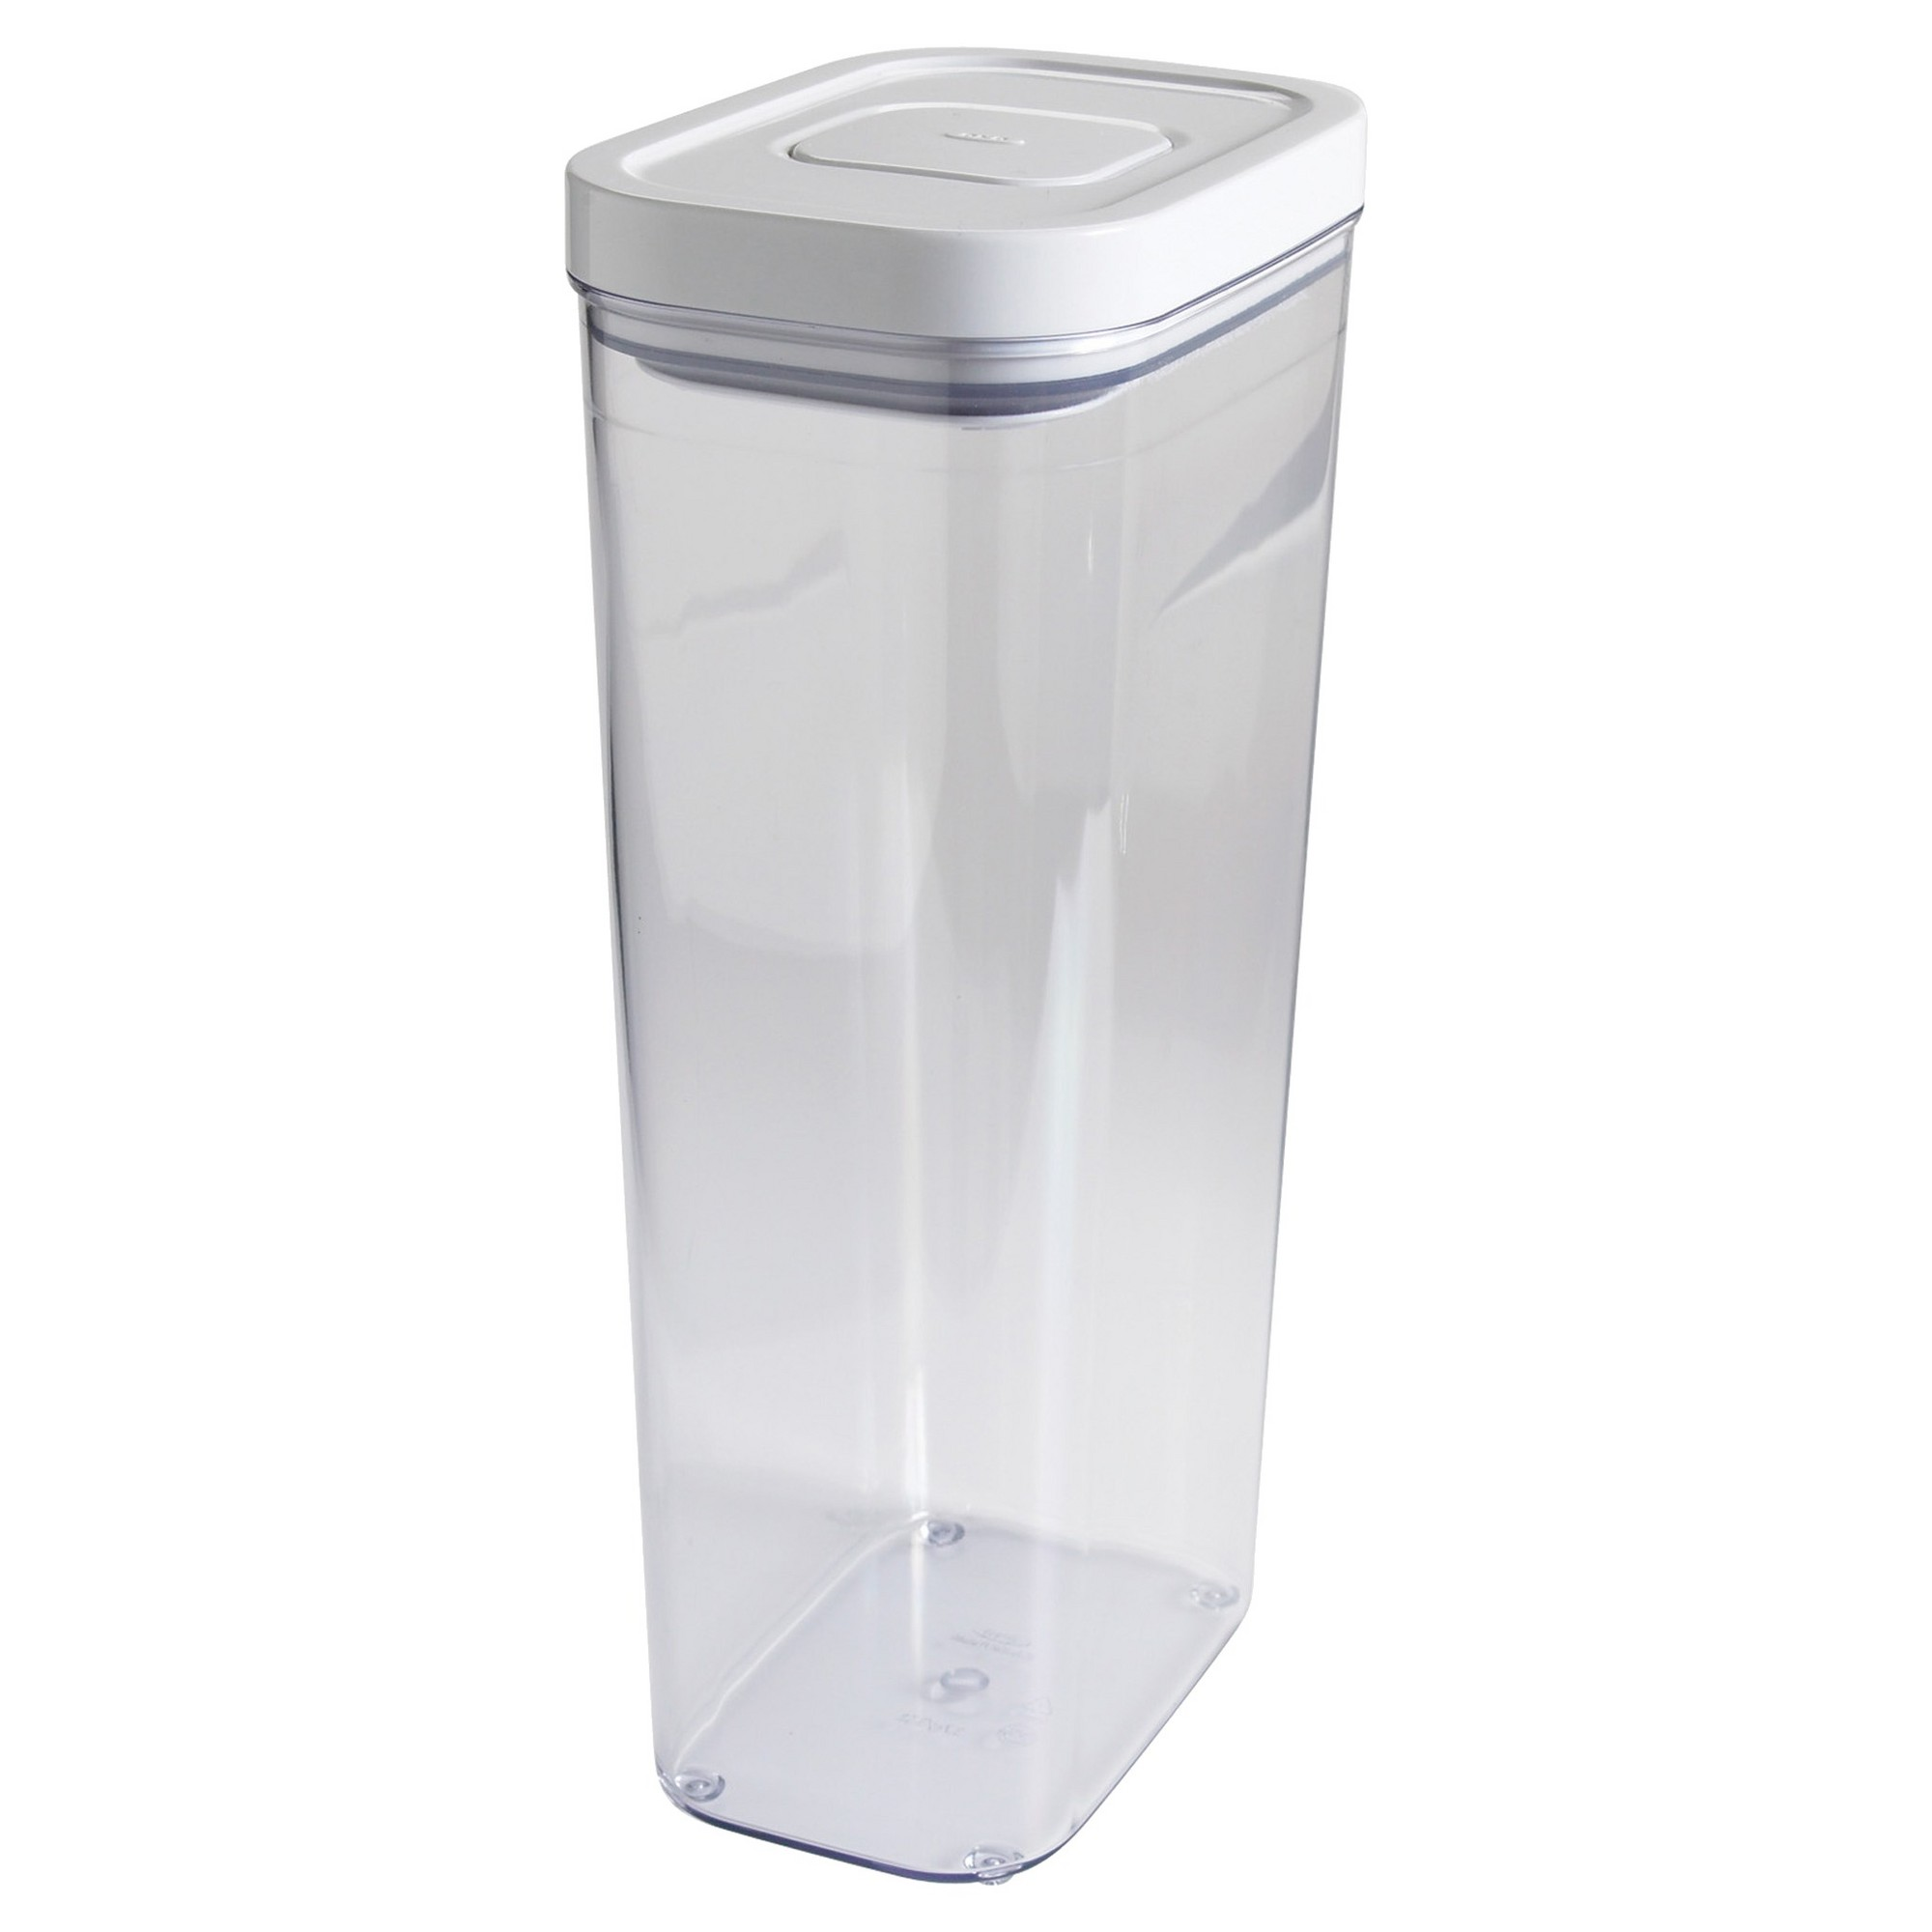 Oxo Pop 3 7qt Airtight Food Storage Container Clear Airtight